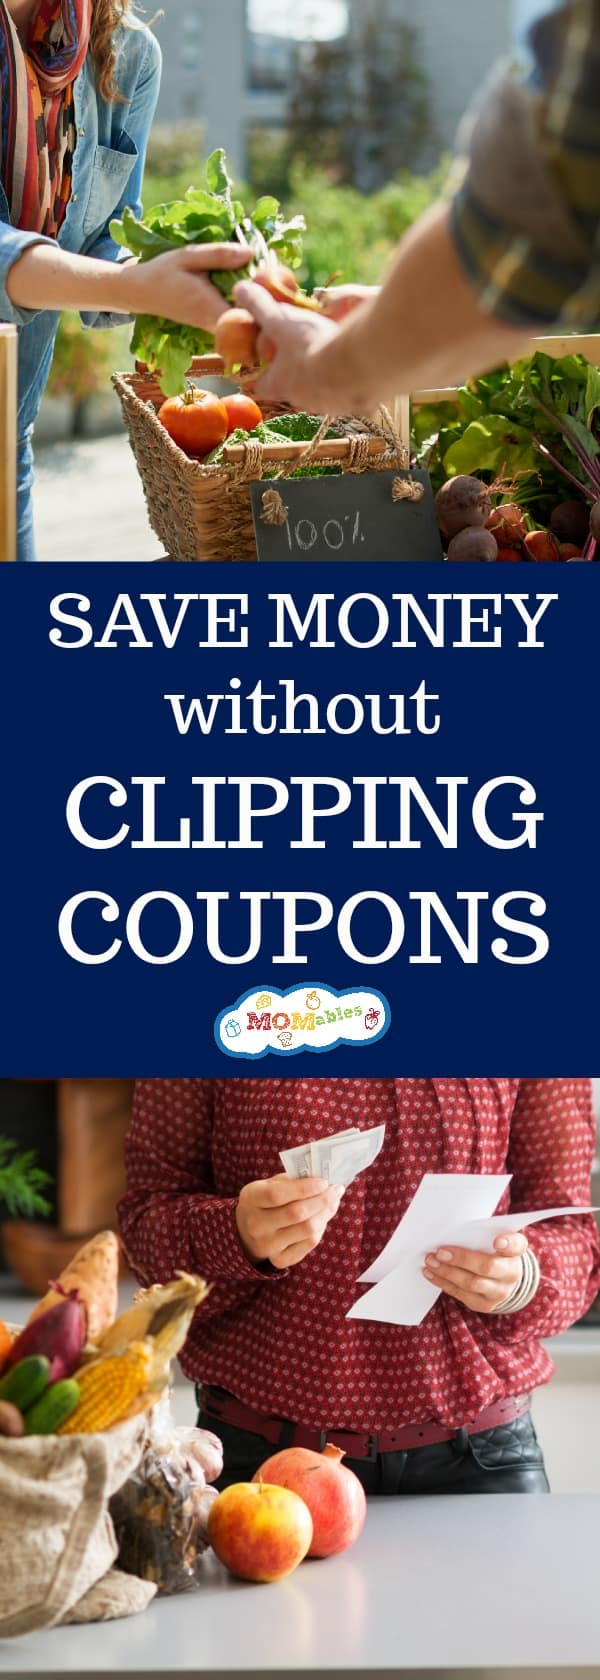 How to save money on food without clipping coupons - Hiring a home designer saves much money and time ...